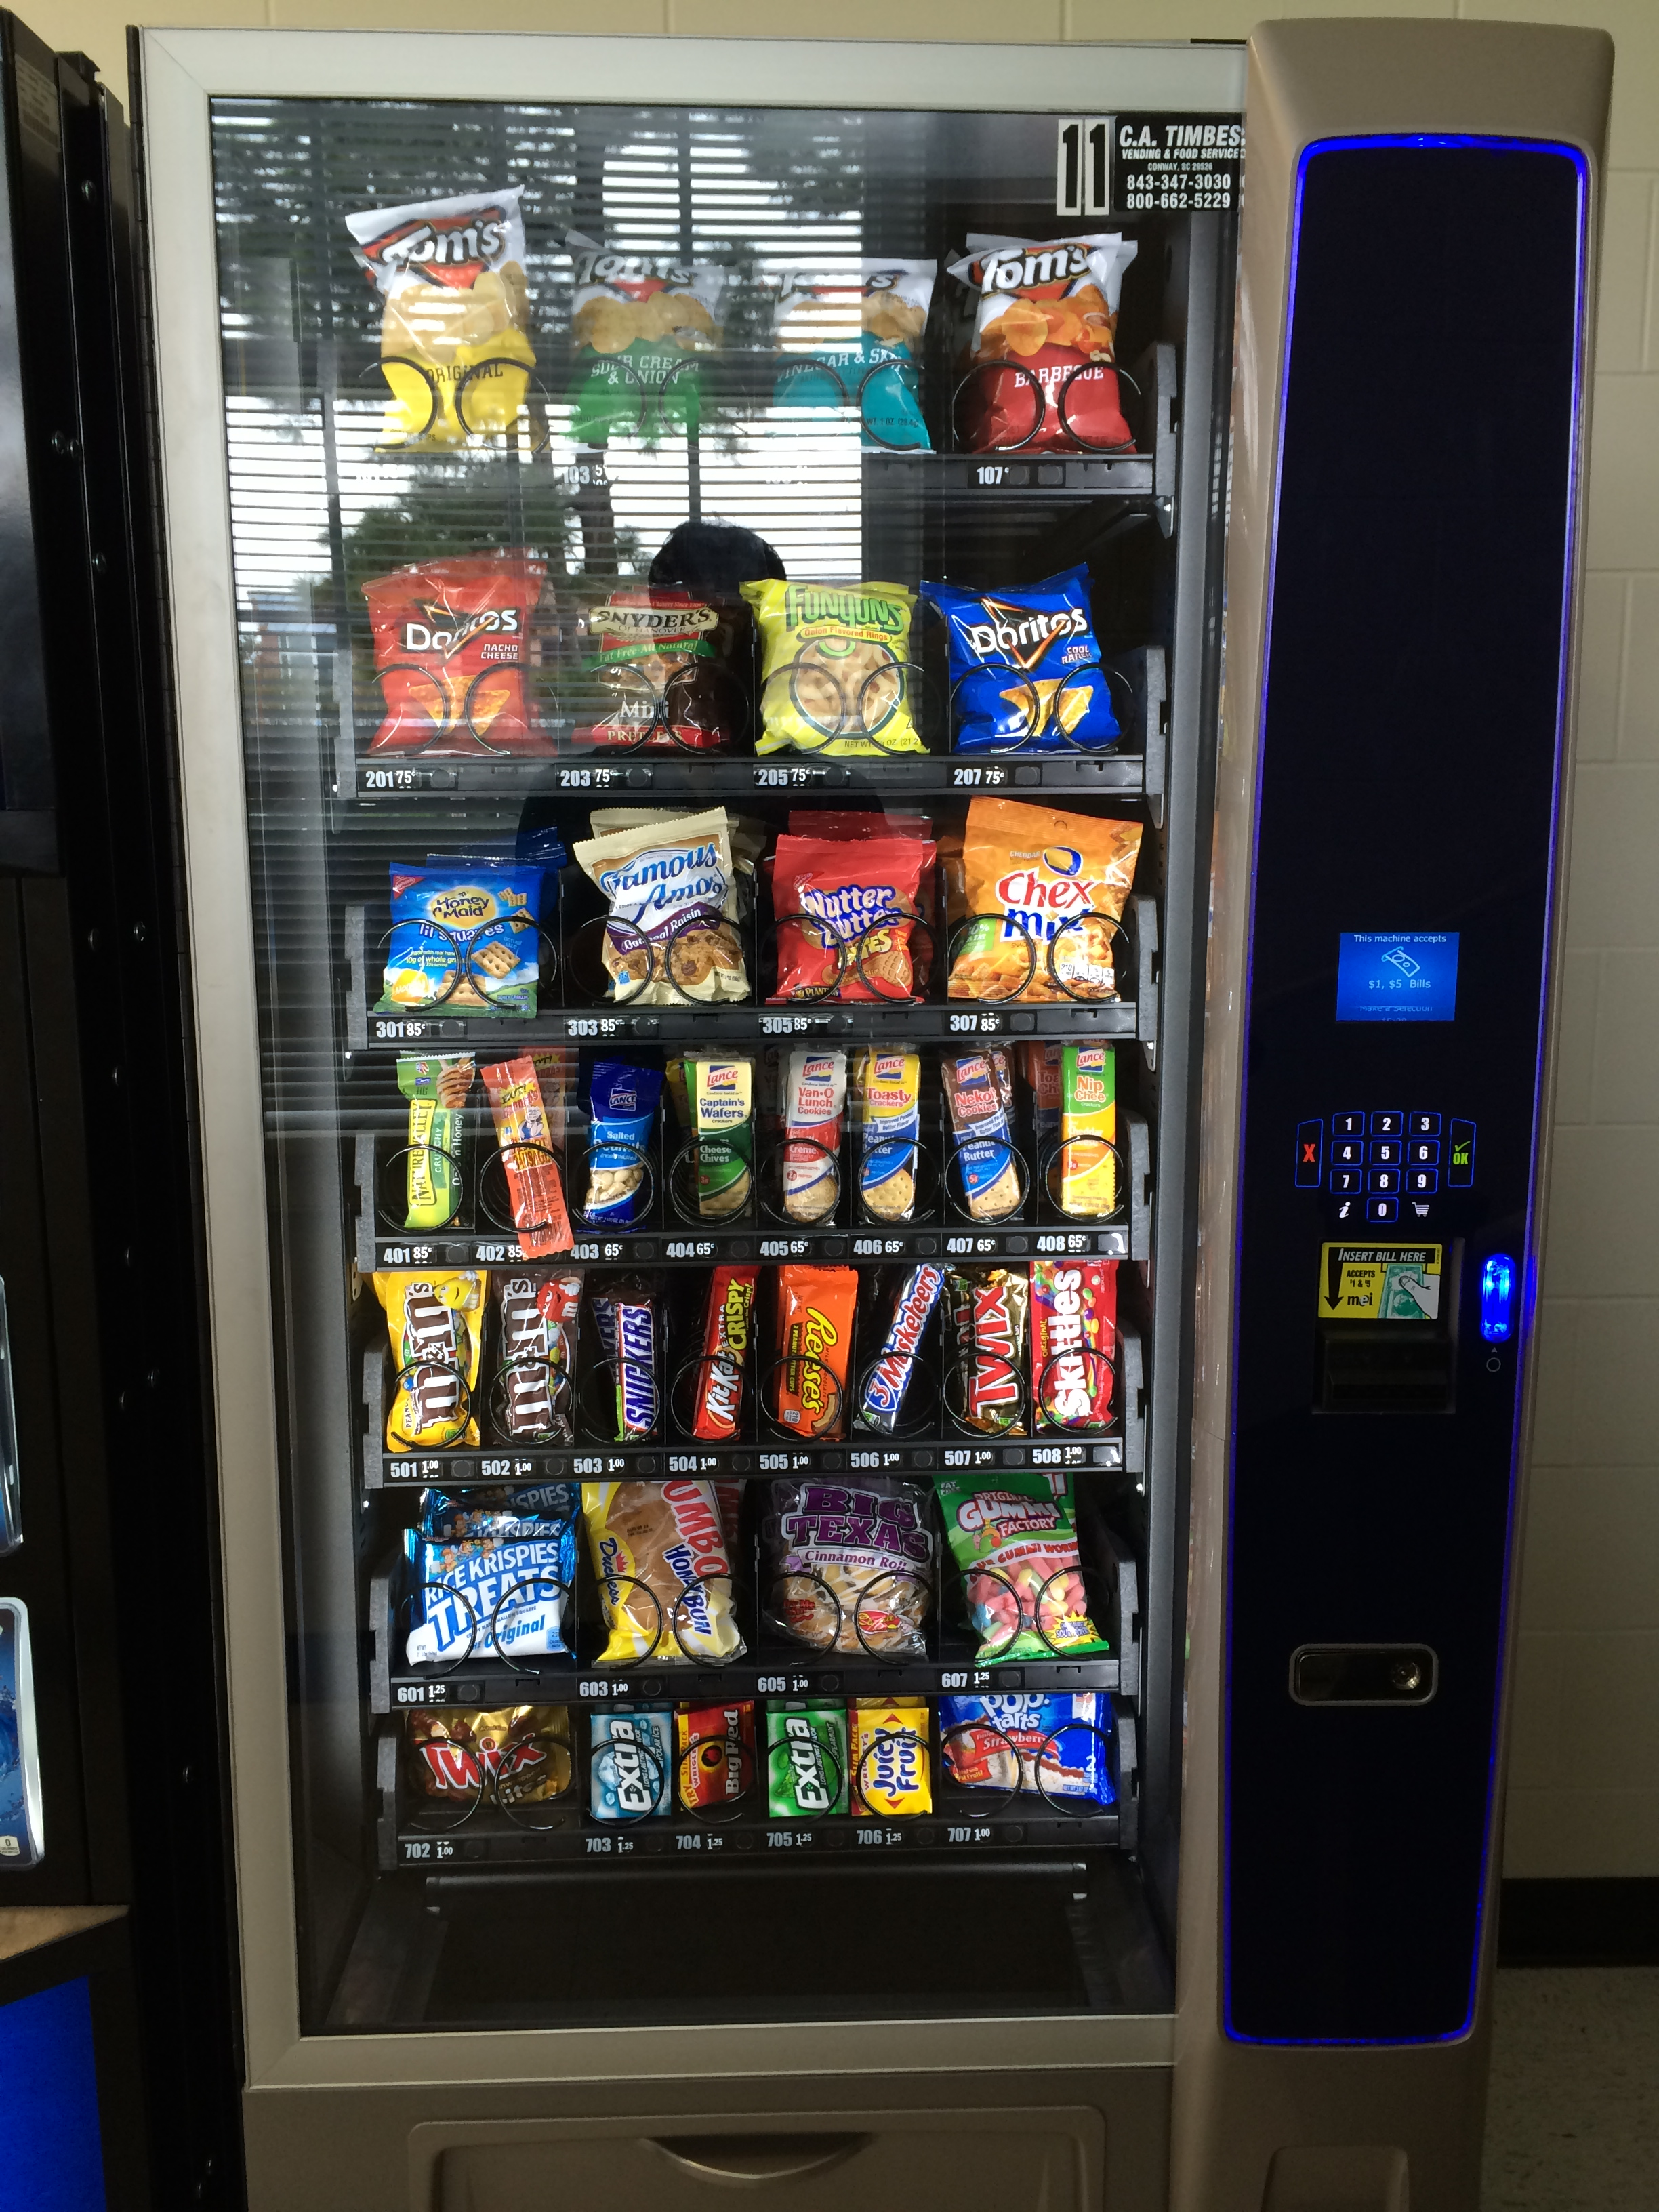 This is the vending machine that I visit on a regular basis and that gave me a surprise today.